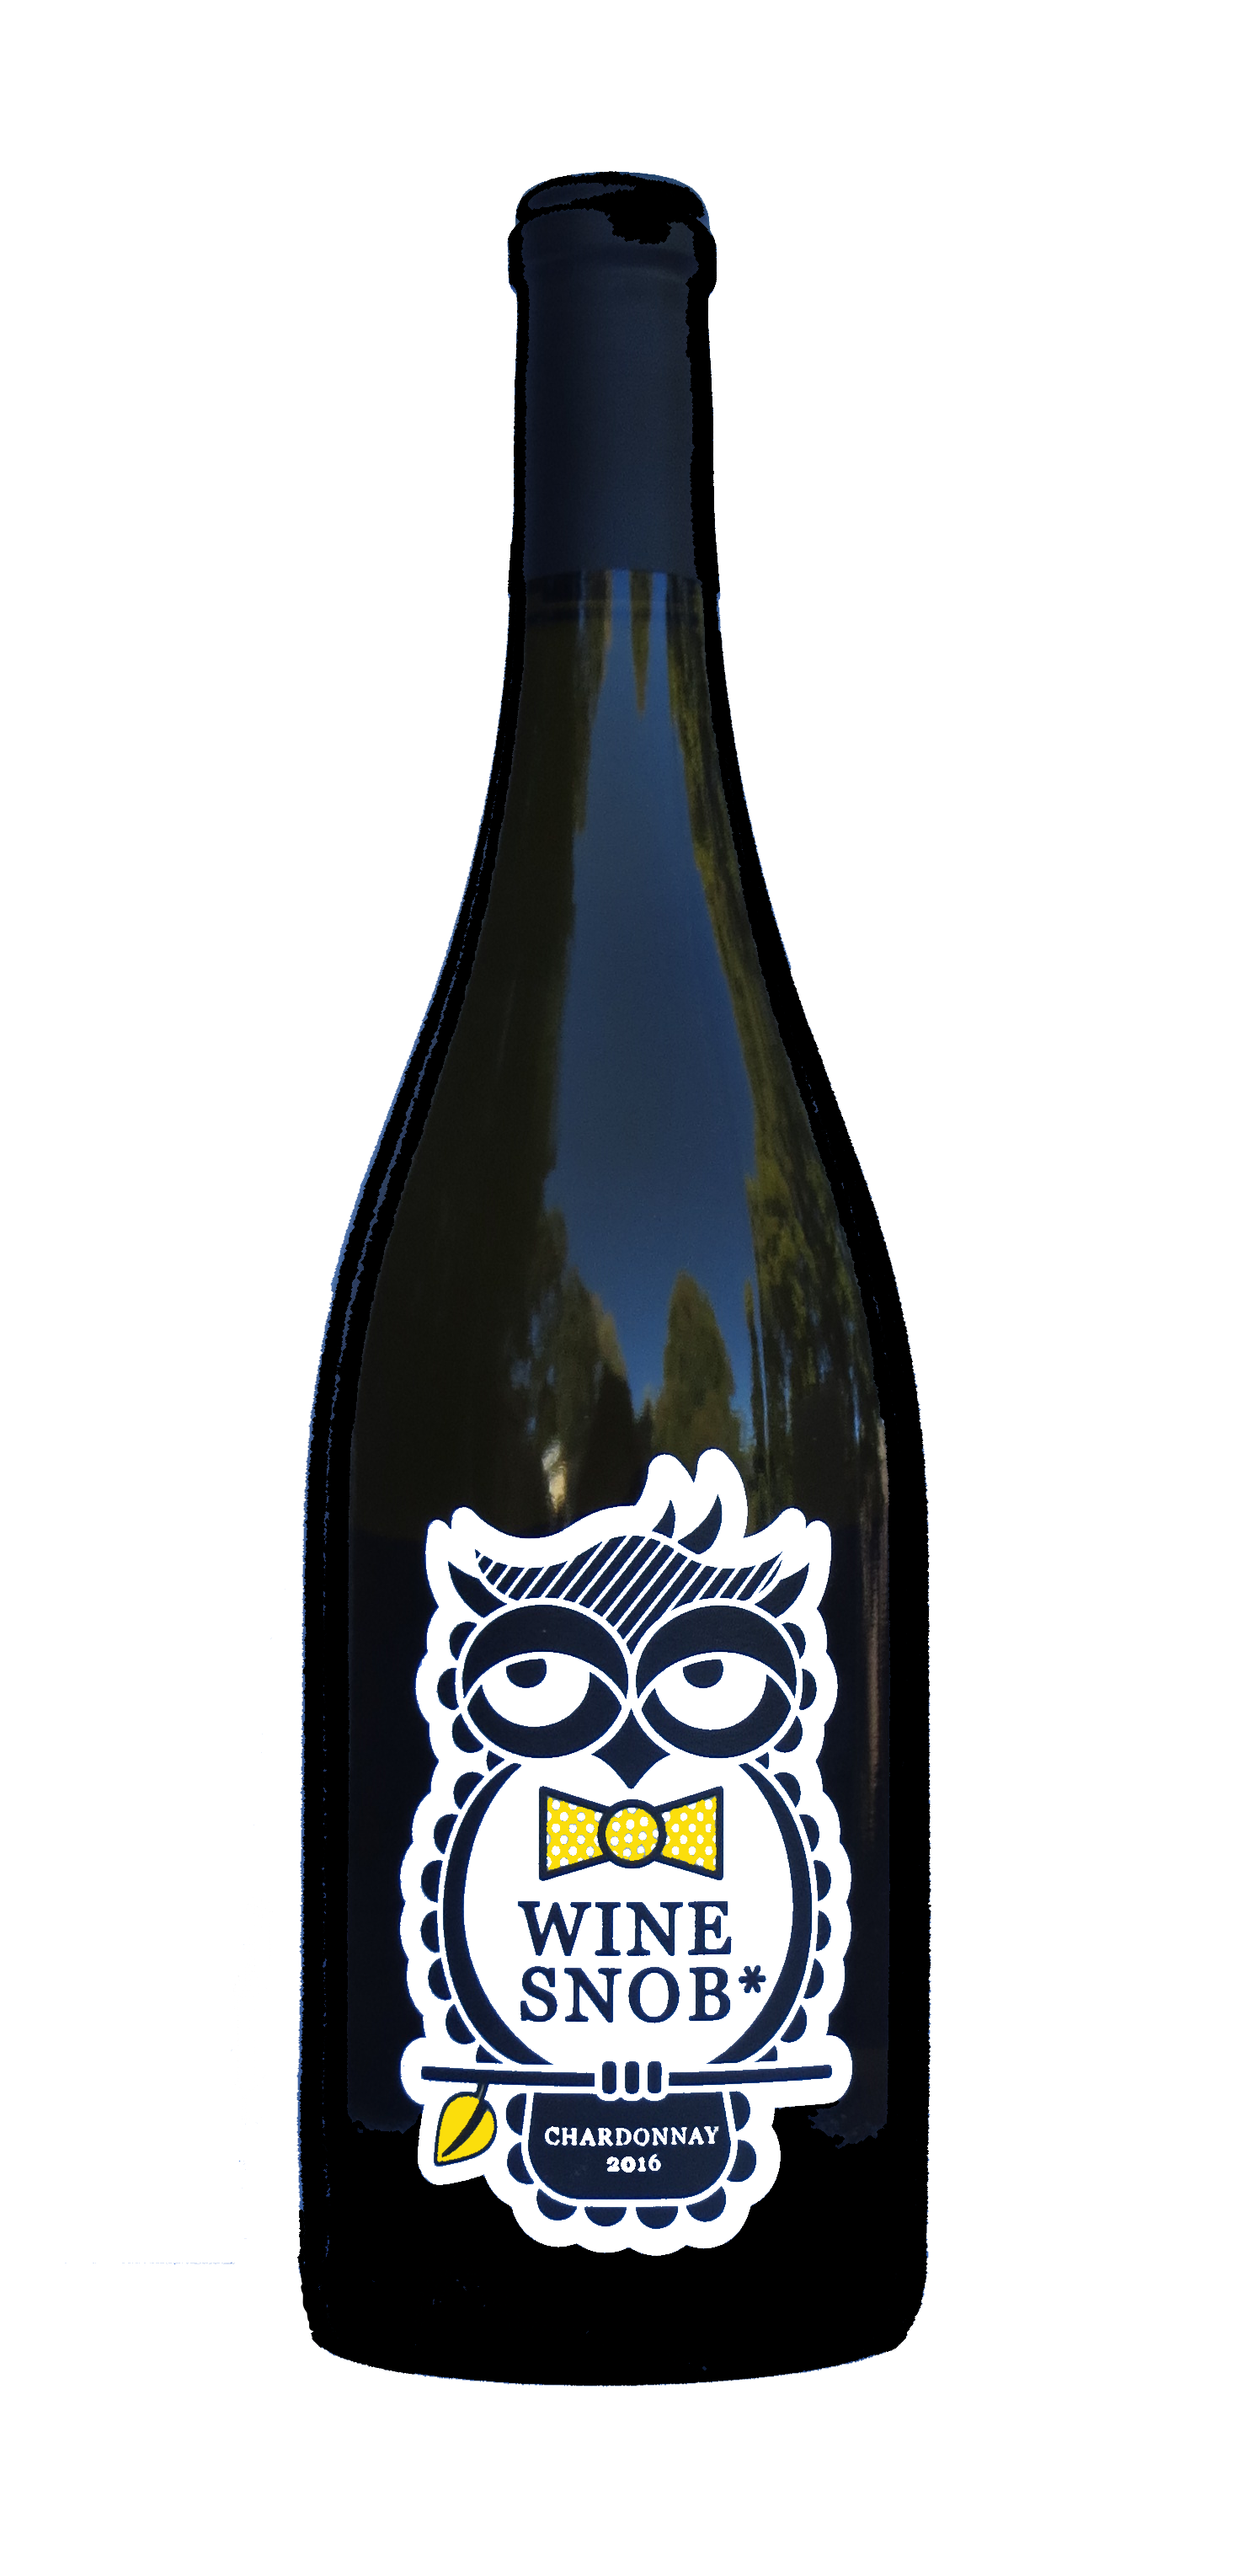 Burgundy-style bottle with the Wine Snob* 2016 Chardonnay label showing an owl perched on a stick with a leaf, slightly rolling its eyes, and wearing a yellow bowtie with white polka dots.